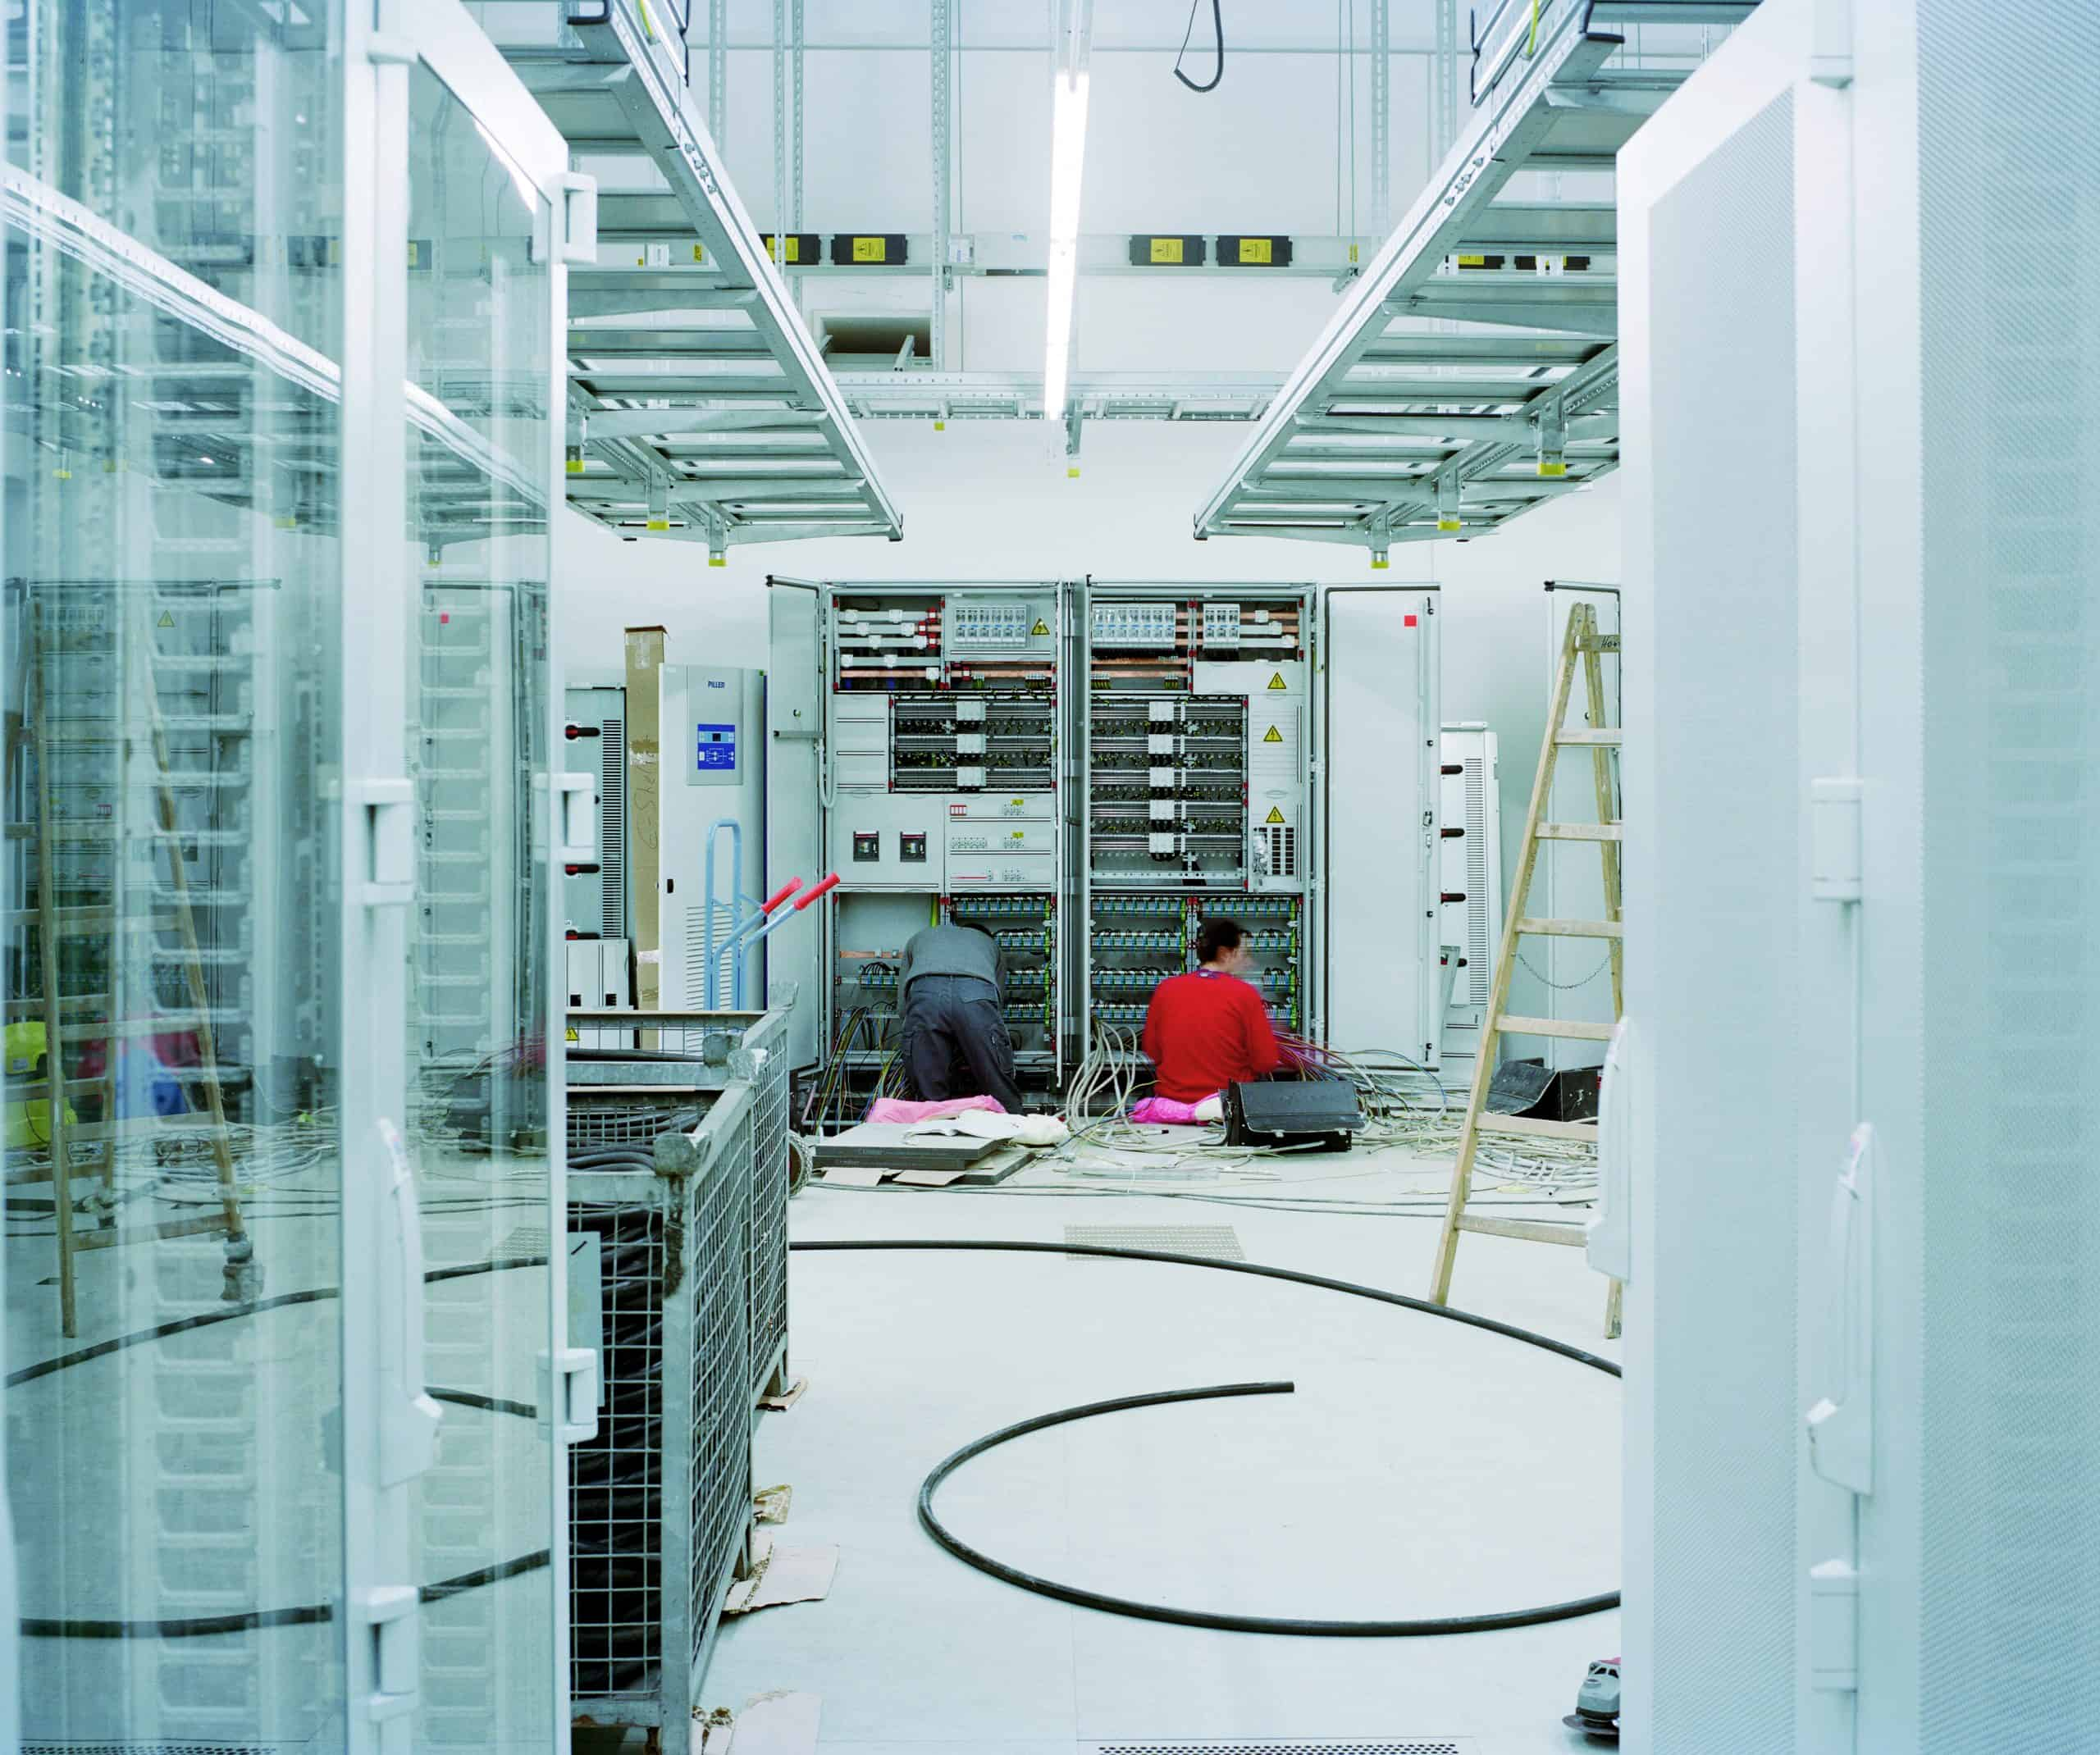 We help you plan, build and operate highly efficient, strongly protected full-lifecycle data center security solutions